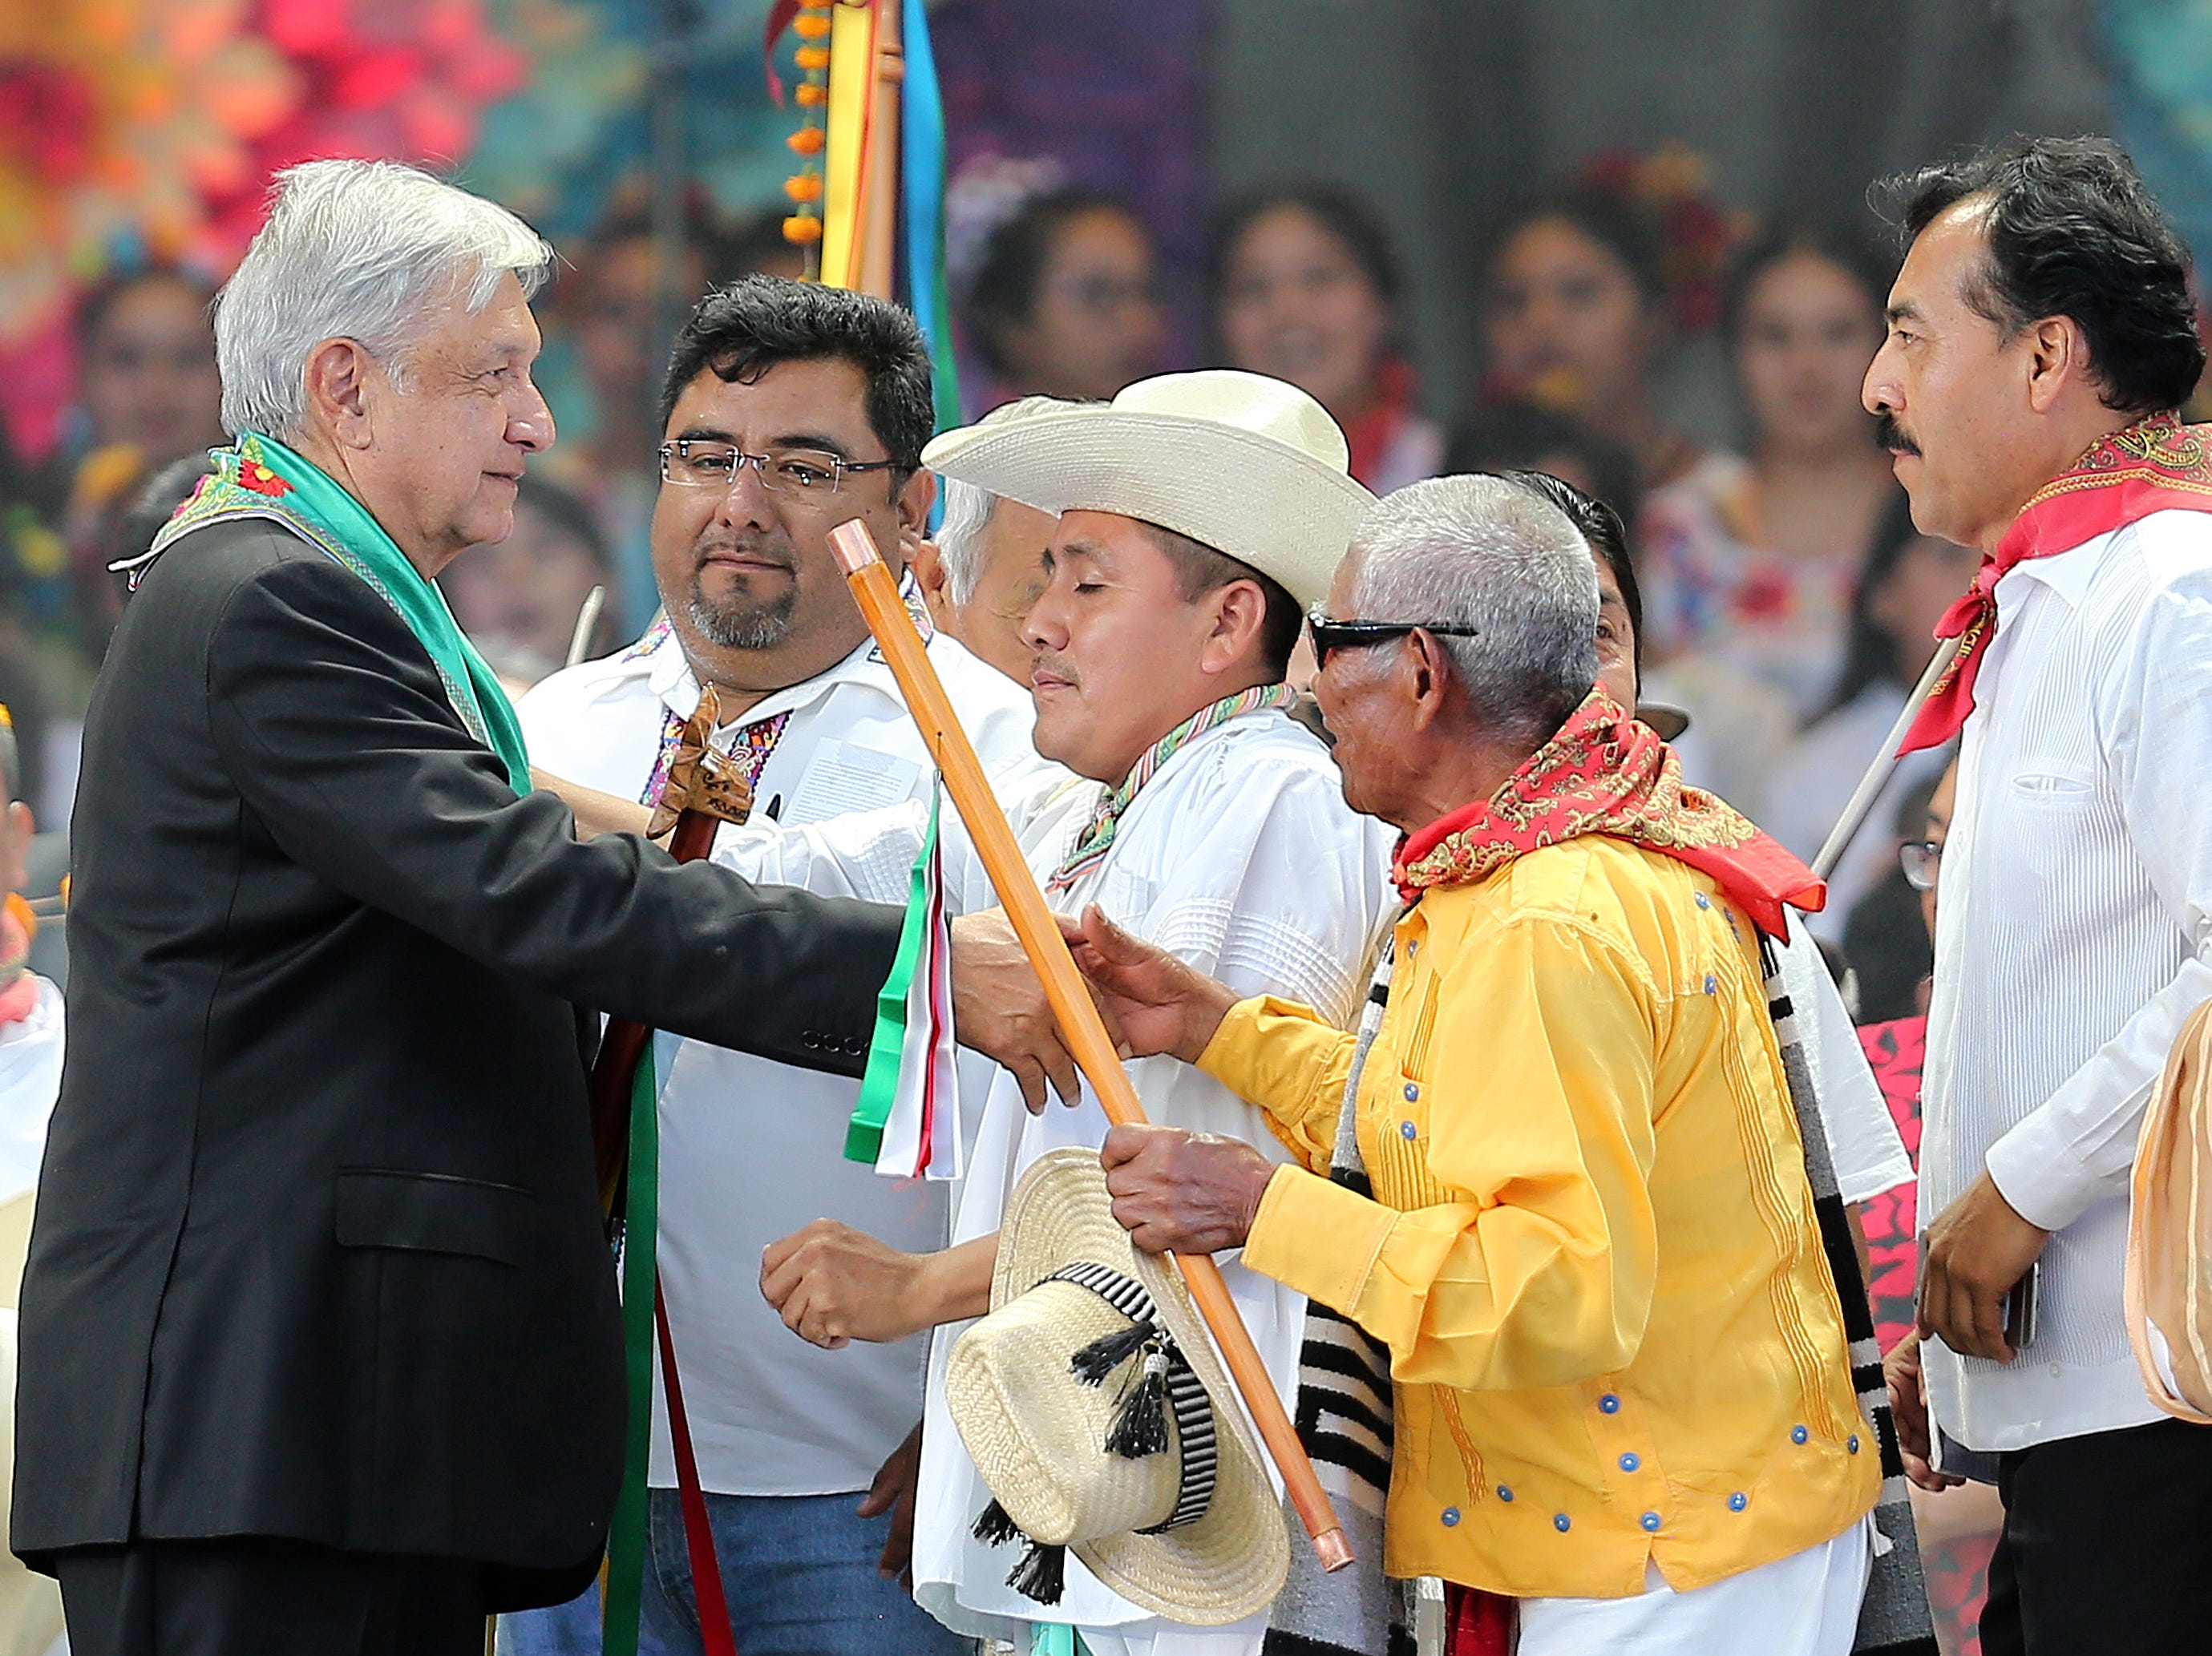 MEXICO CITY, MEXICO - DECEMBER 01: Andres Manuel Lopez Obrador (L), President of Mexico talks to members of the original towns during the events of the Presidential Investiture as part of the 65th Mexico Presidential Inauguration at Zocalo on December 01, 2018 in Mexico City, Mexico. (Photo by Manuel Velasquez/Getty Images)